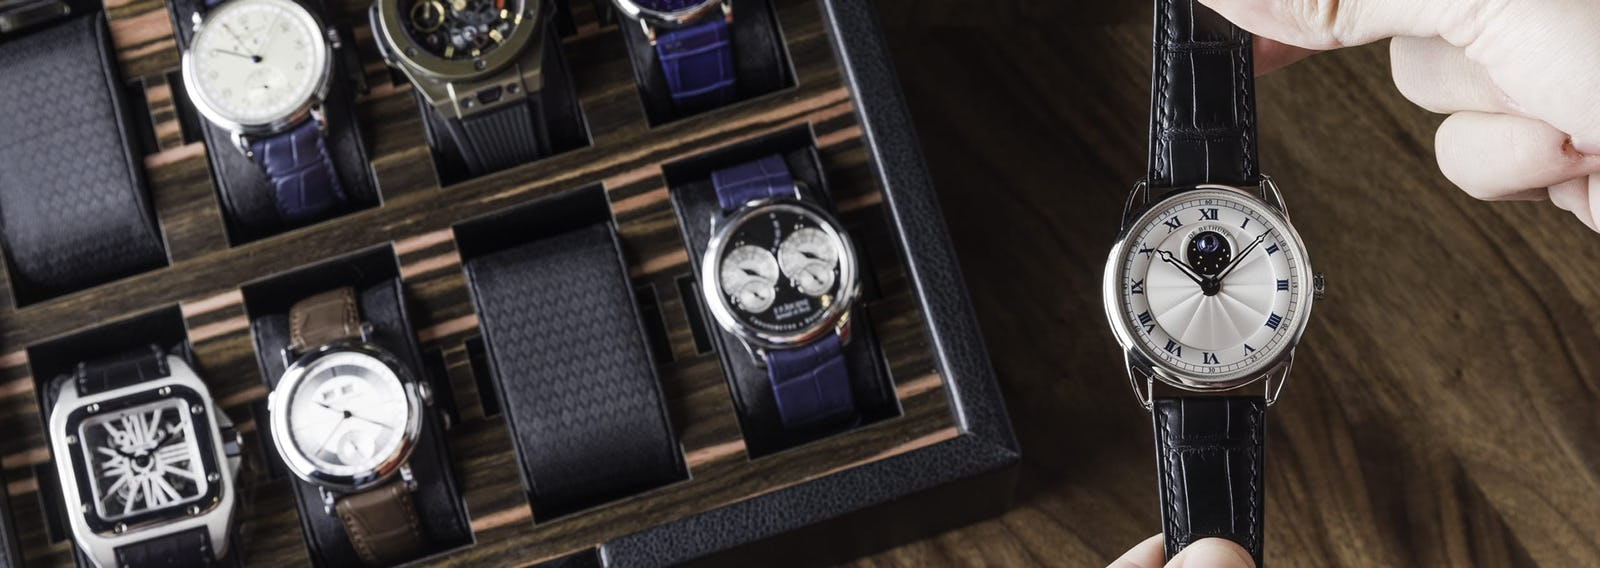 The Digital Transformation of the Luxury Watch Markets